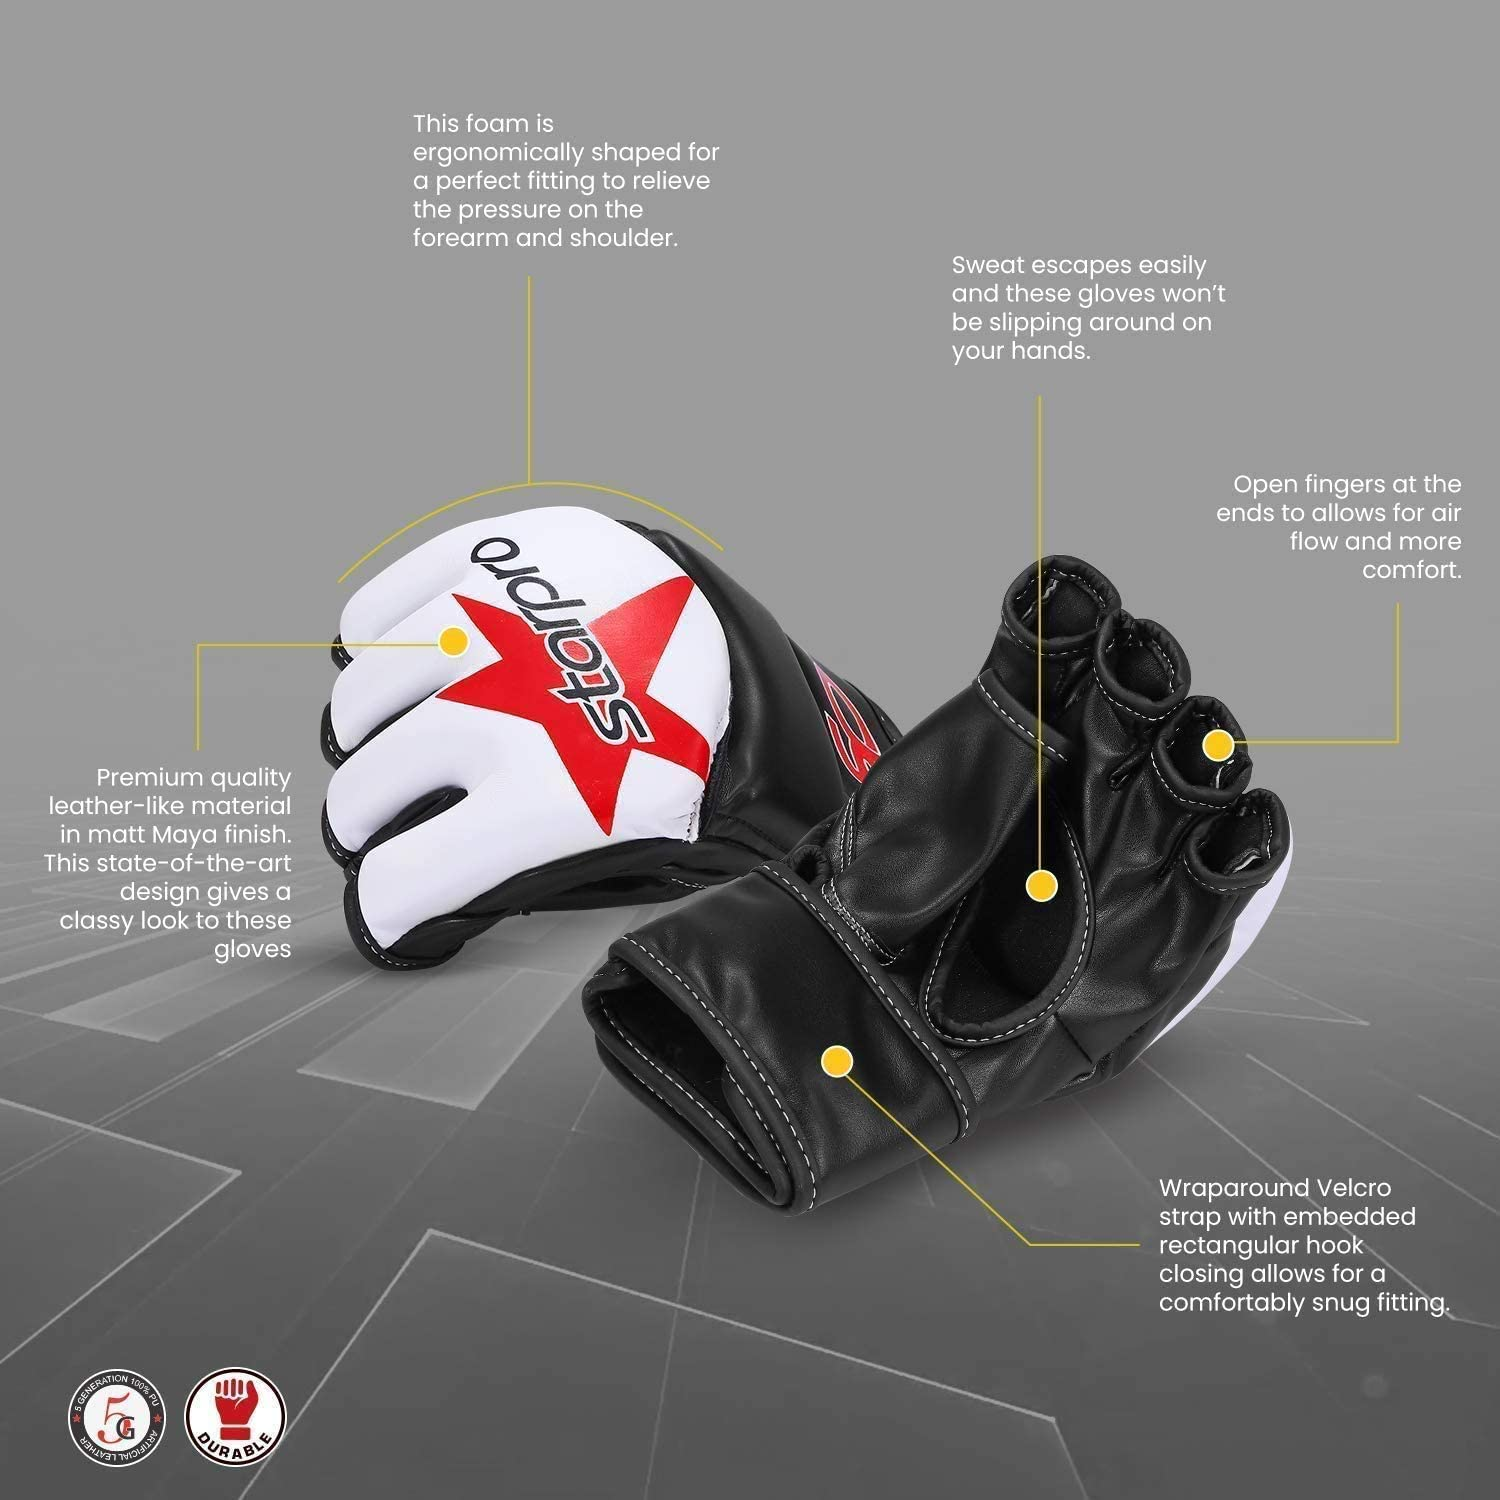 Men /& Women White /& Black for Sparring and Grappling in Combat Training Muay Thai Martial Arts MMA Kickboxing Krav MAGA Fitness and Exercise PU Leather Starpro /'Star/' Grappling Gloves